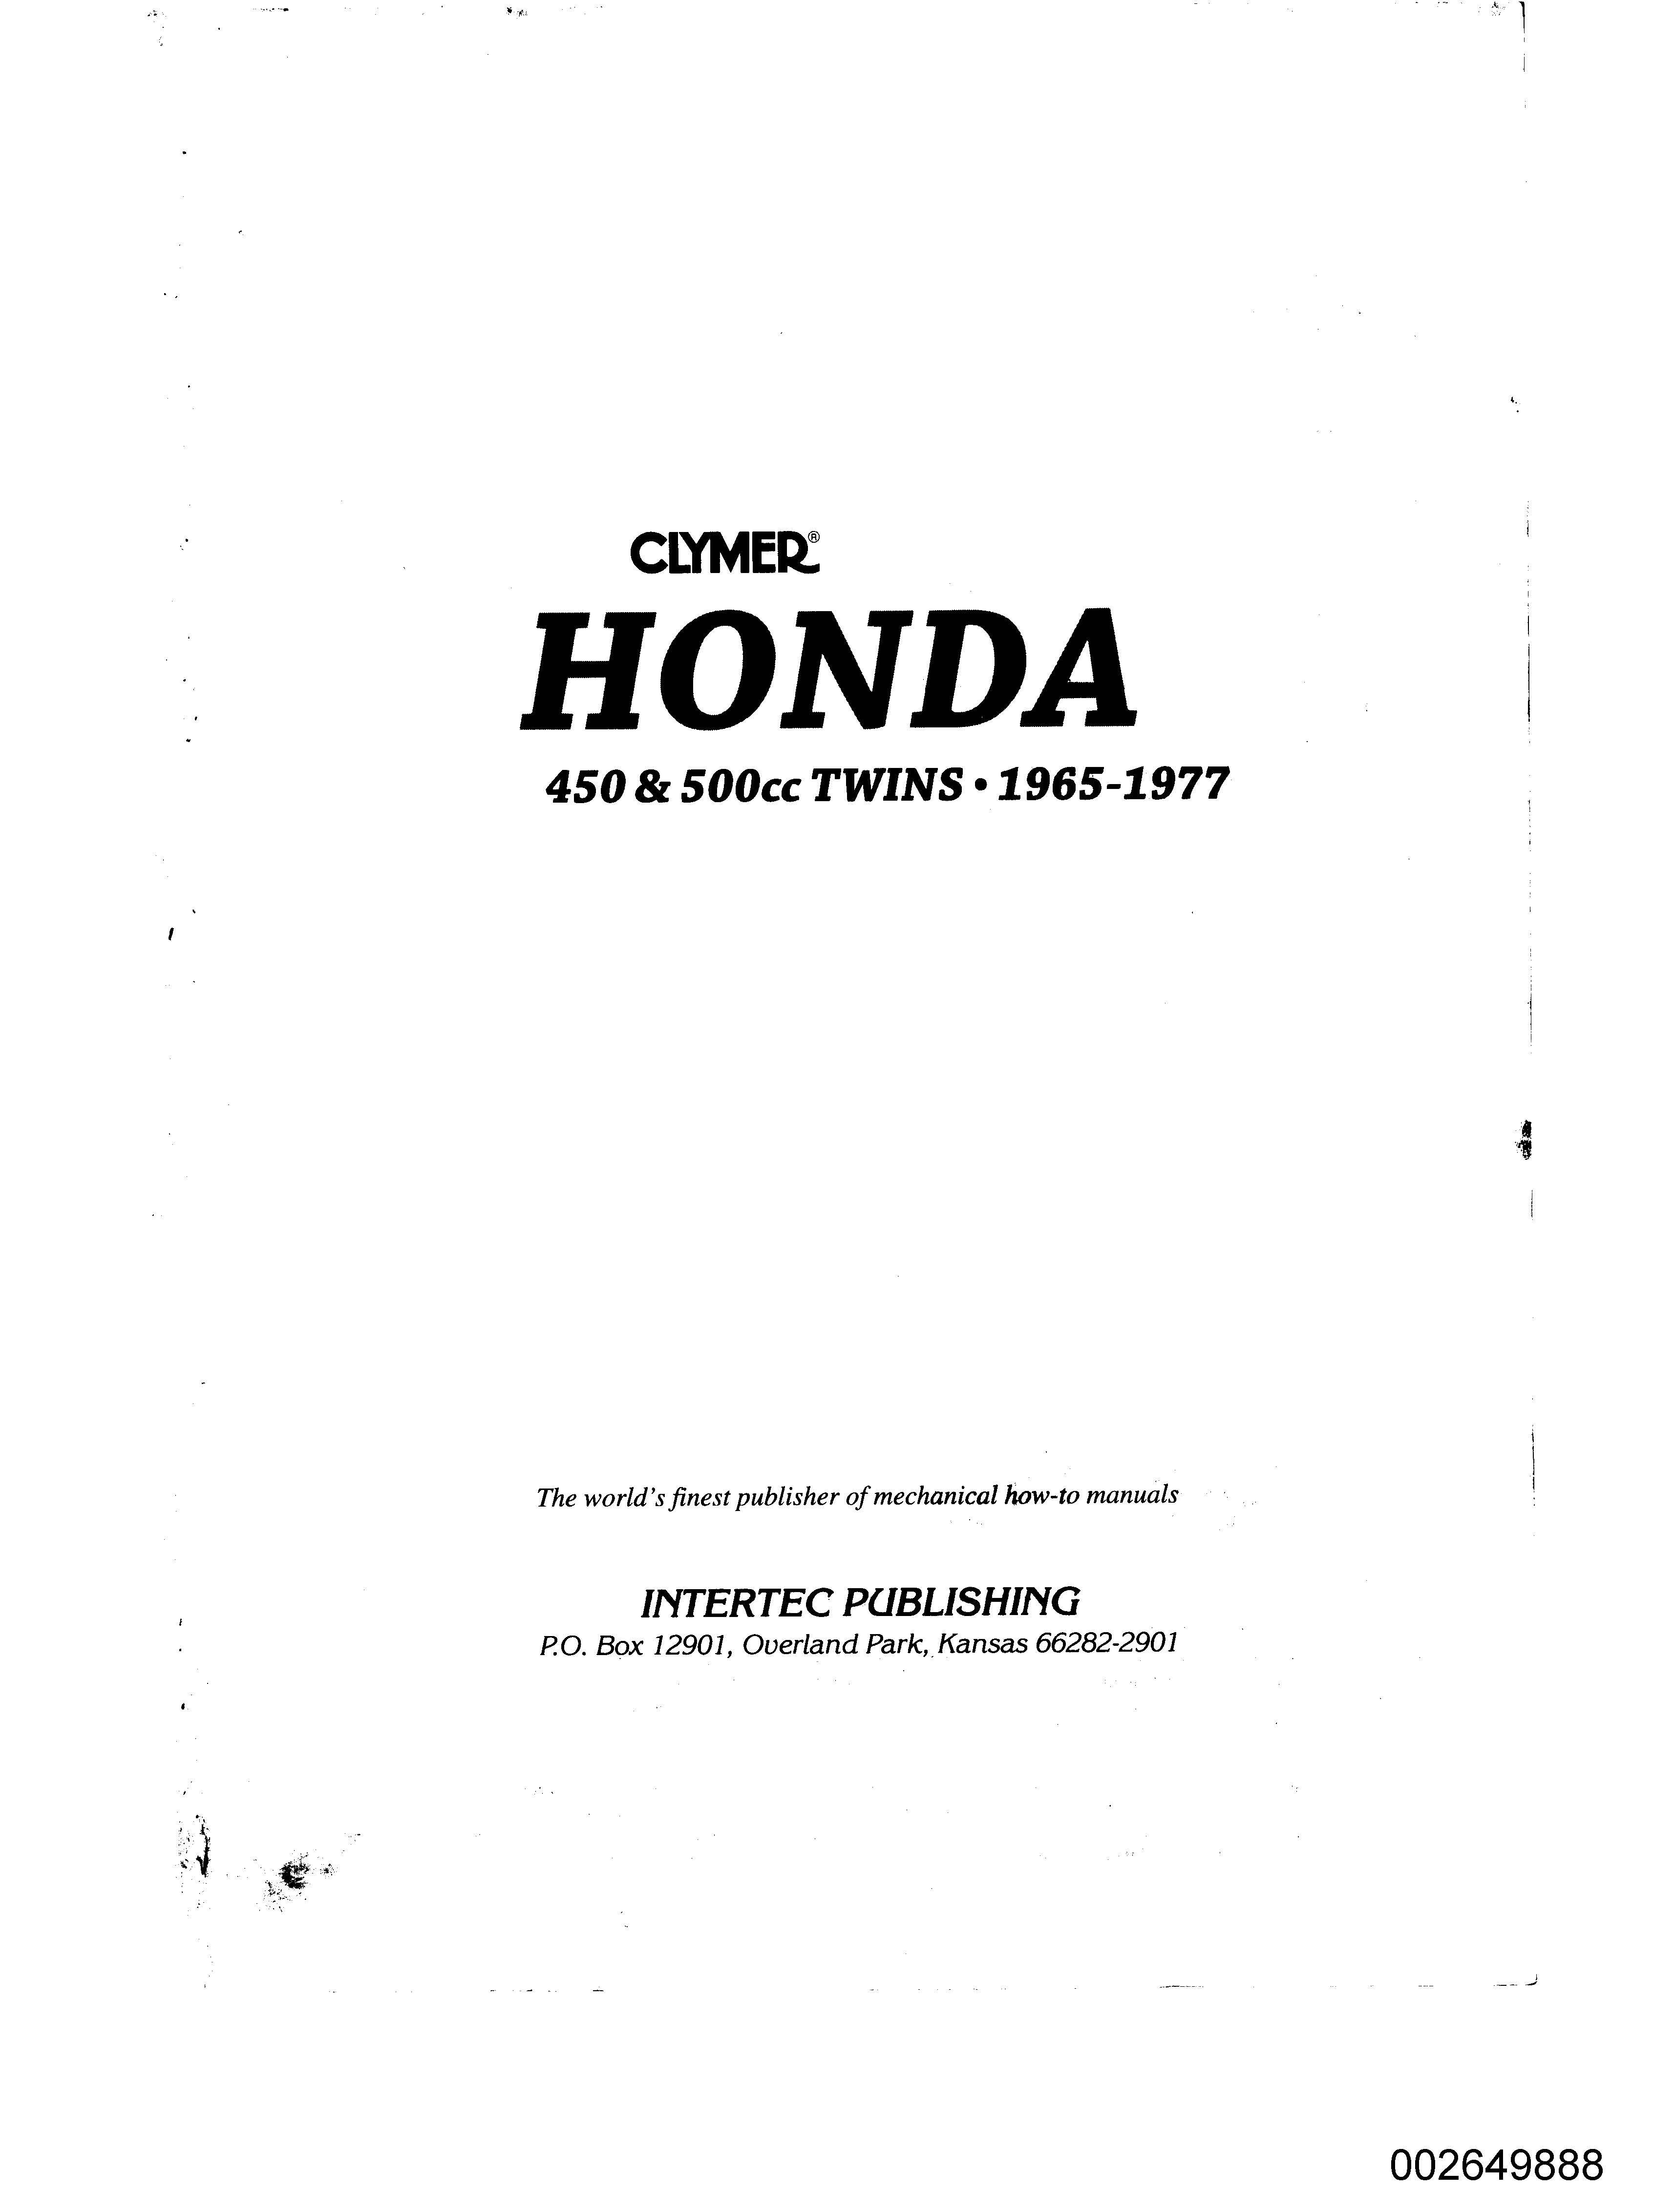 Clymer Honda 450&500 (1965-1977) Twins Workshop Manual